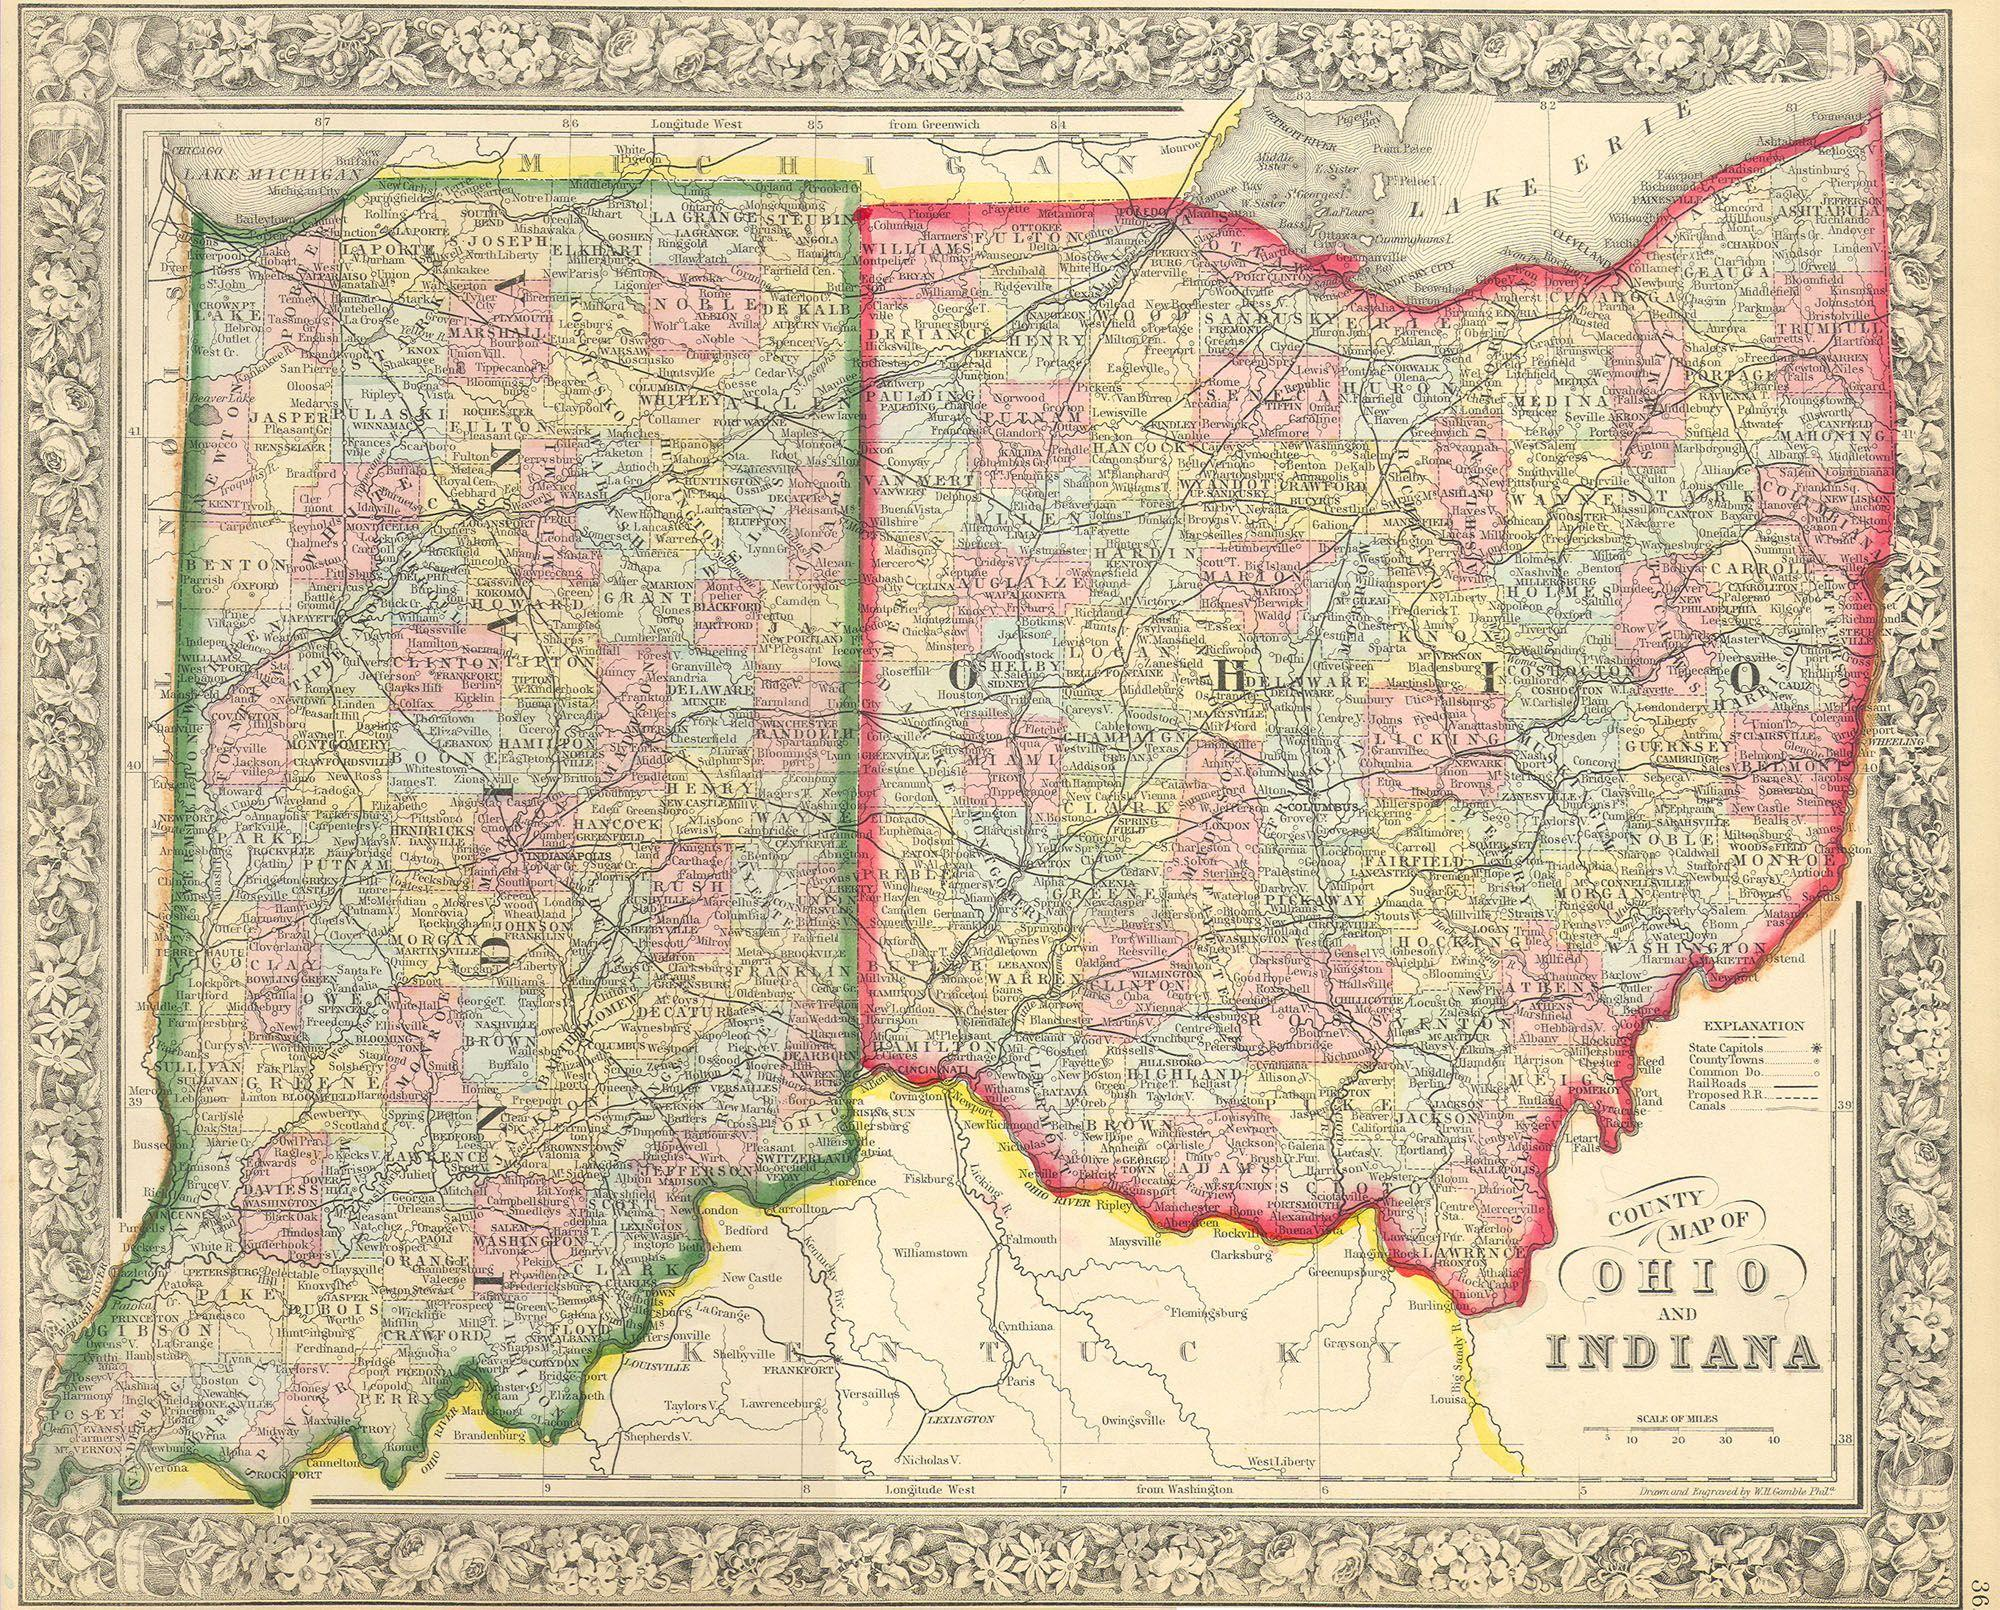 philadelphia county map with File 1860 Mitchell's Map Of Ohio And Indiana   Geographicus   Inoh M 63 on Amsoil truck wrap furthermore Ss6304a1 moreover Sugarcreek together with  as well Latest.